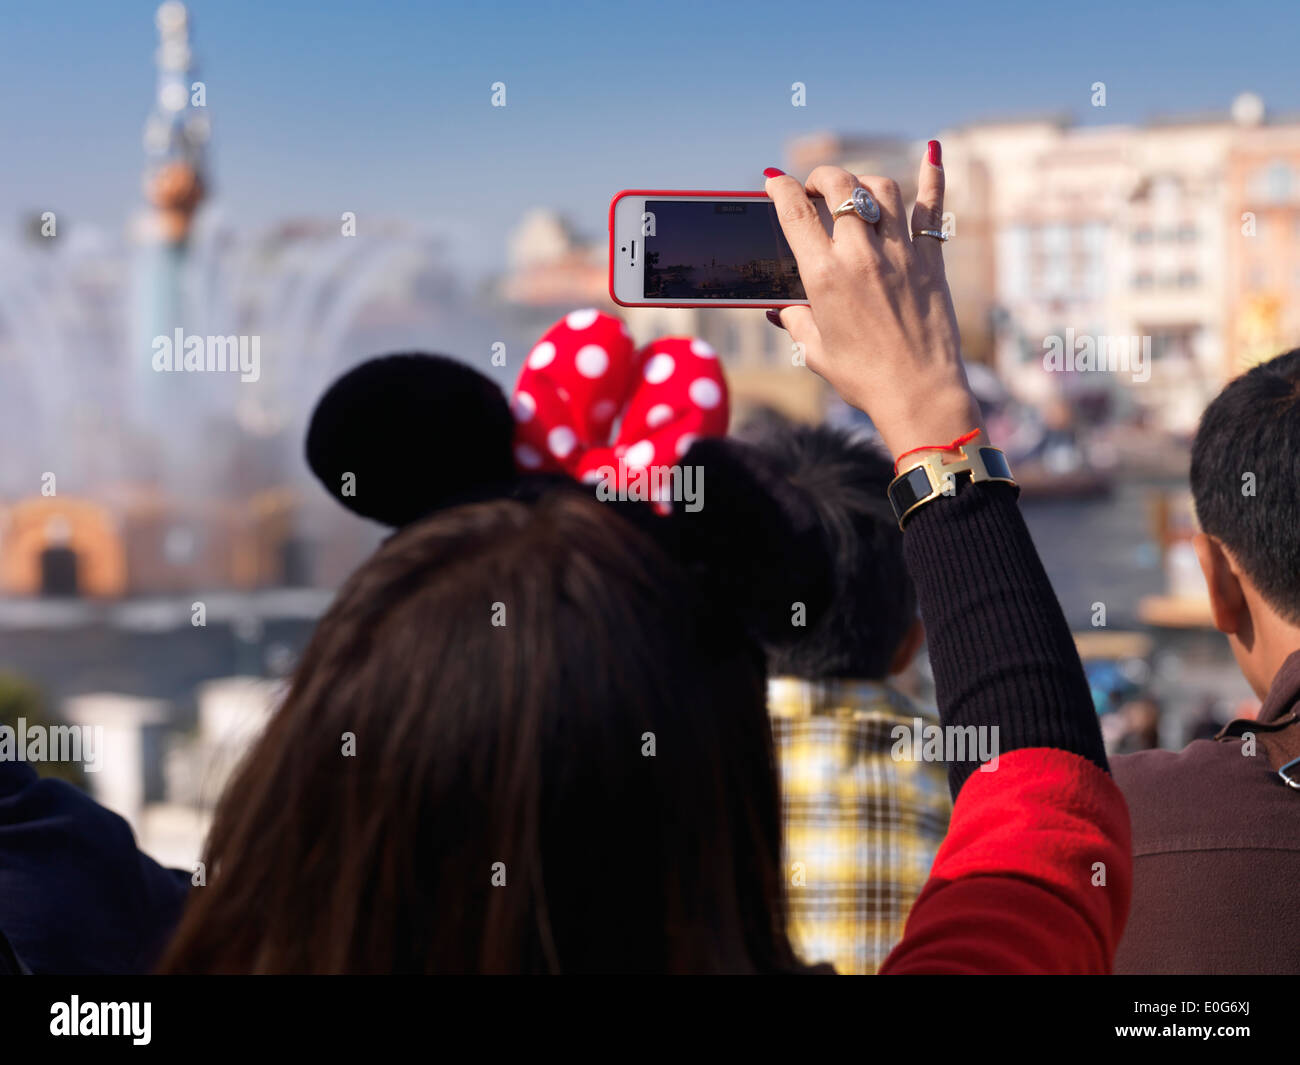 Woman taking pictures with iPhone of a show at Tokyo Disneysea theme park. Japan. Stock Photo